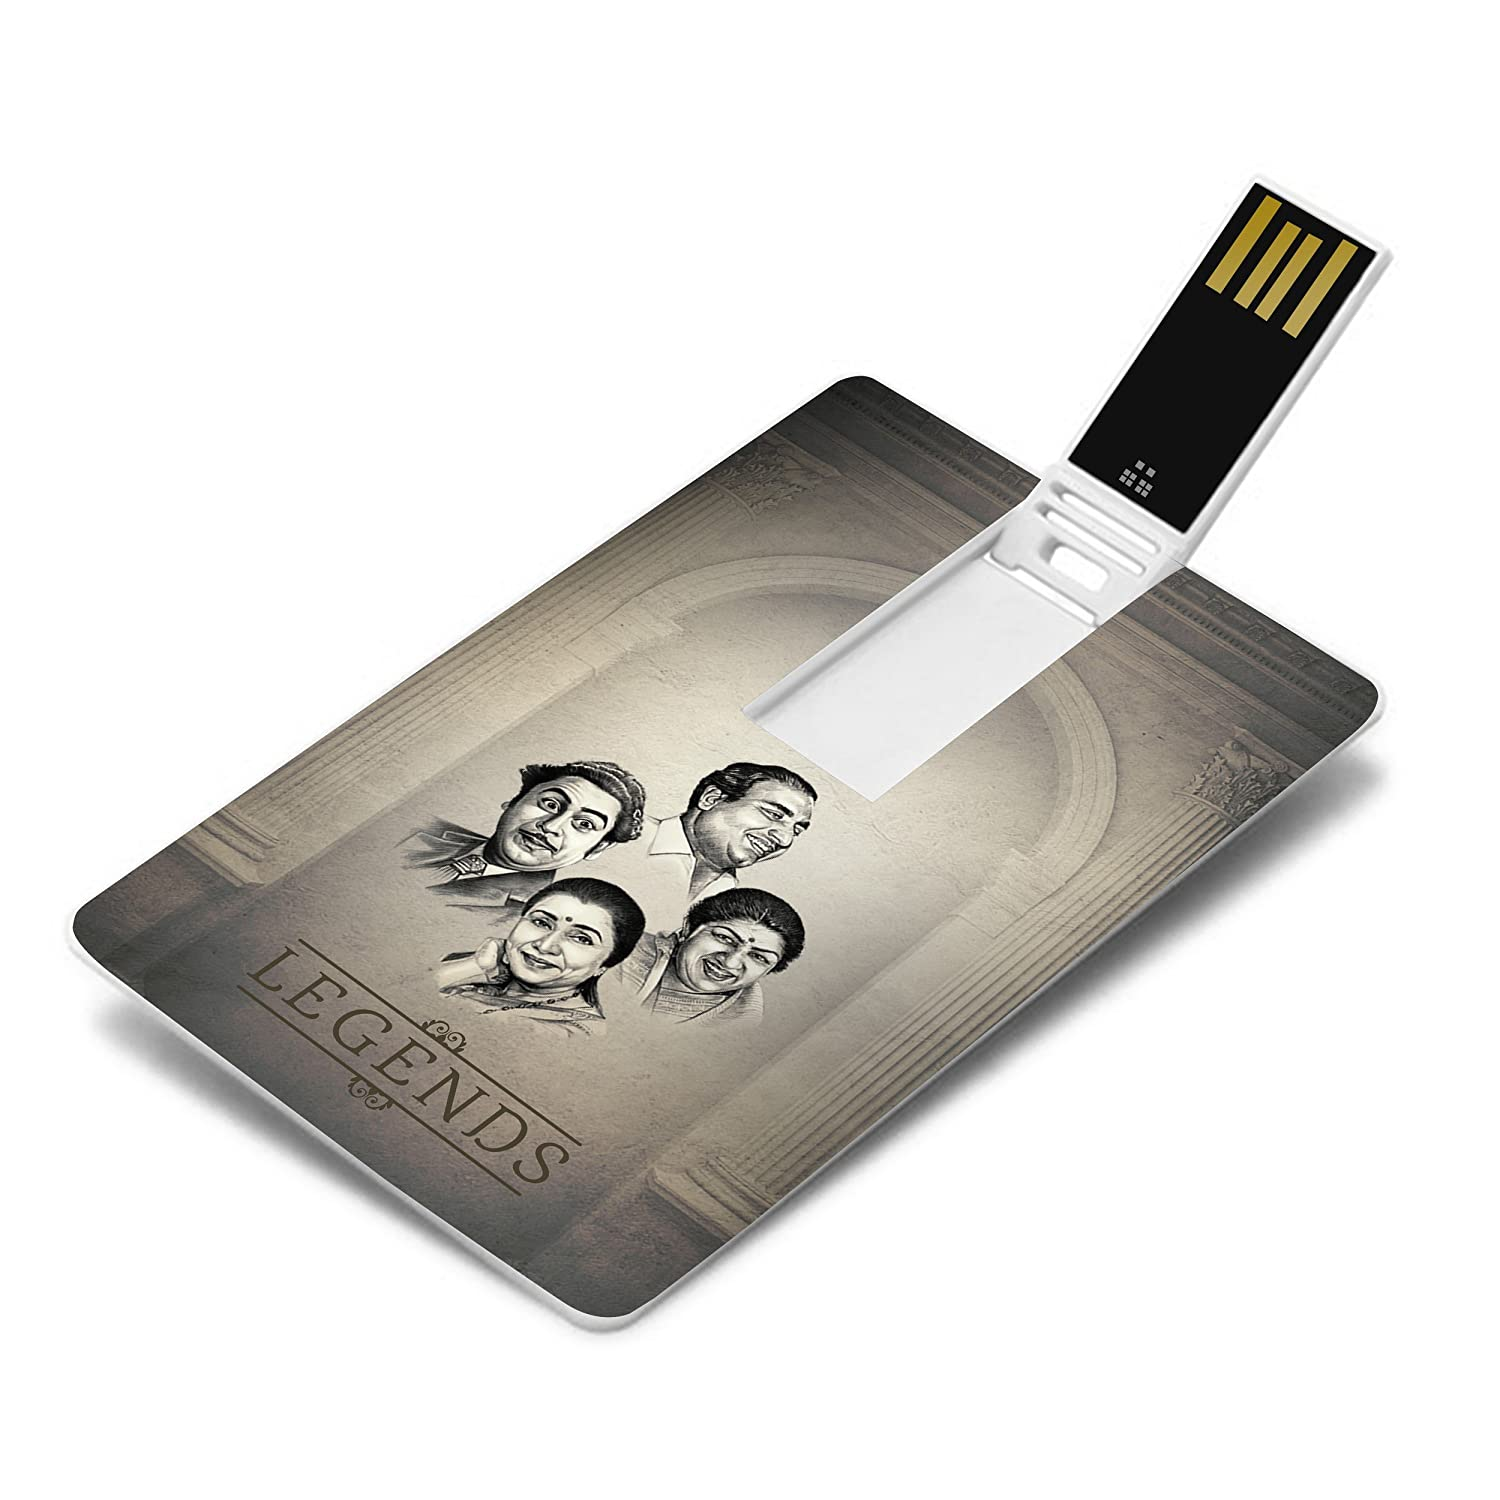 music card legends 320kbps mp3 audio online at low prices